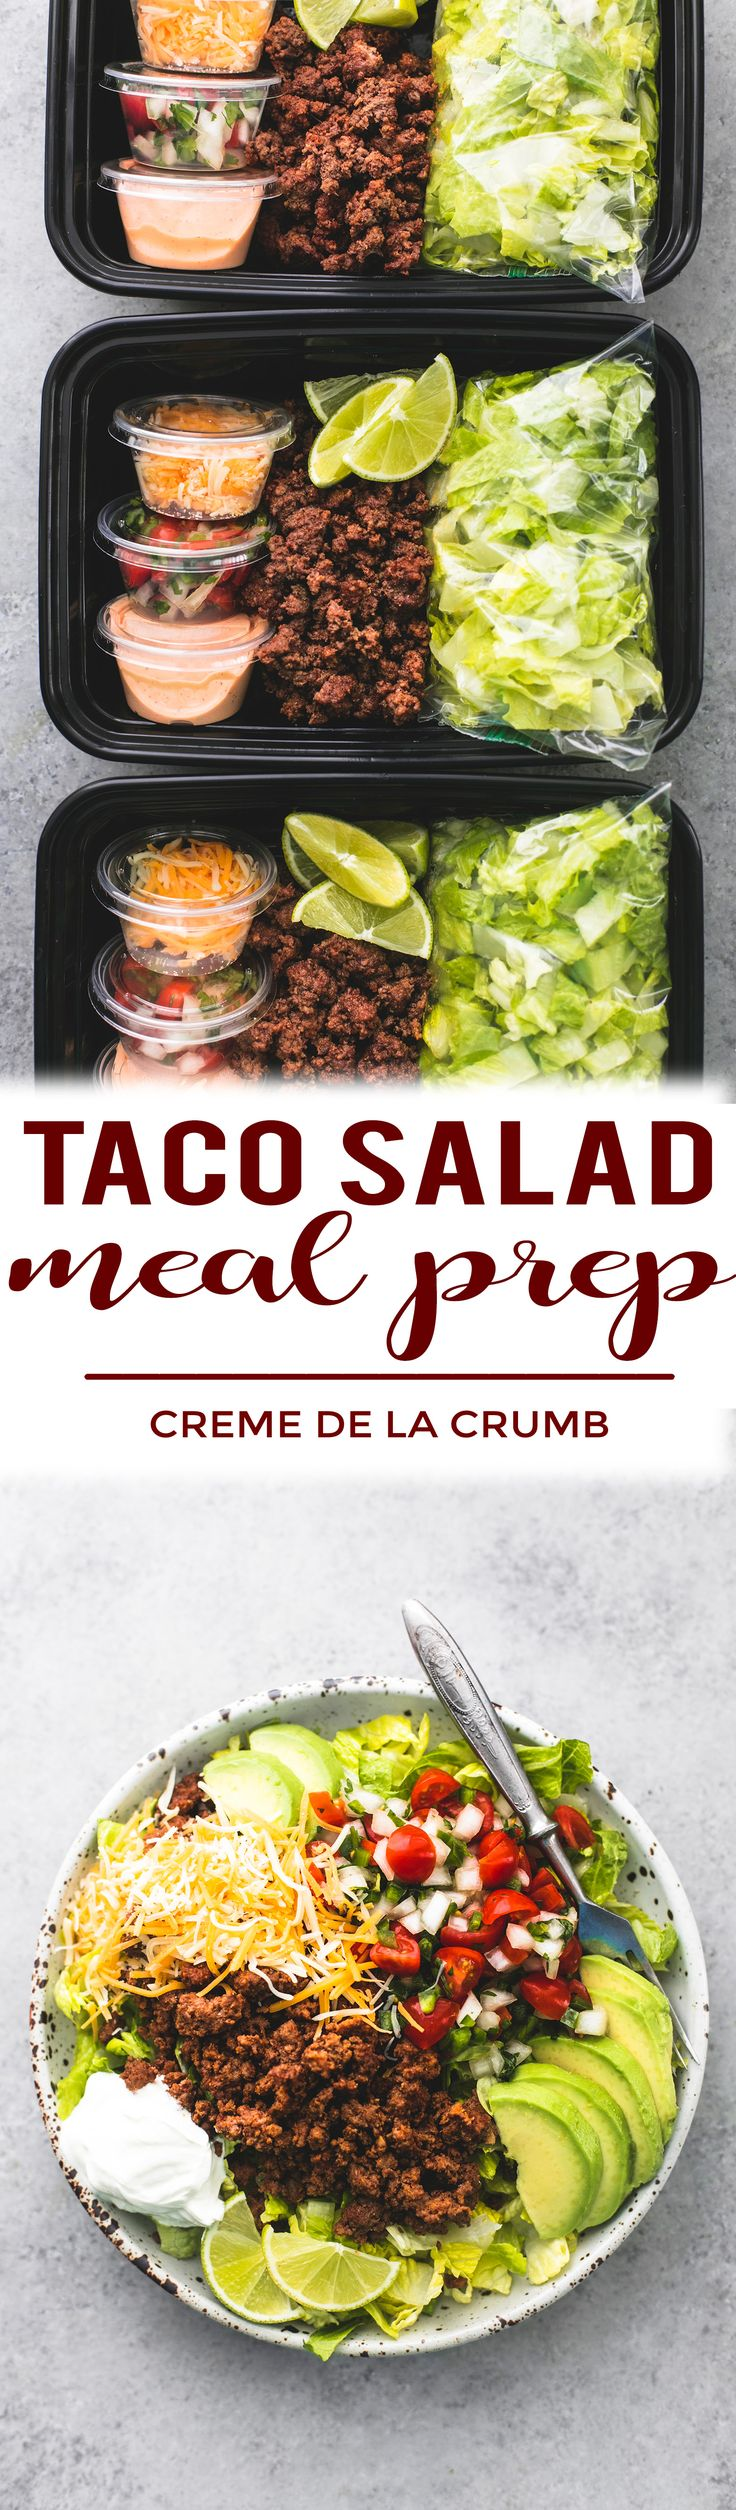 Easy and healthy taco salad meal prep bowls you can make ahead for dinner or lunches with savory seasoned ground beef, fresh lettuce, cheese, and pico, and chipotle ranch dressing. | lecremedelacrumb.com #mealprep #tacosalad #groundbeefrecipe #easyrecipe #familyfriendly #cremedelacrumb